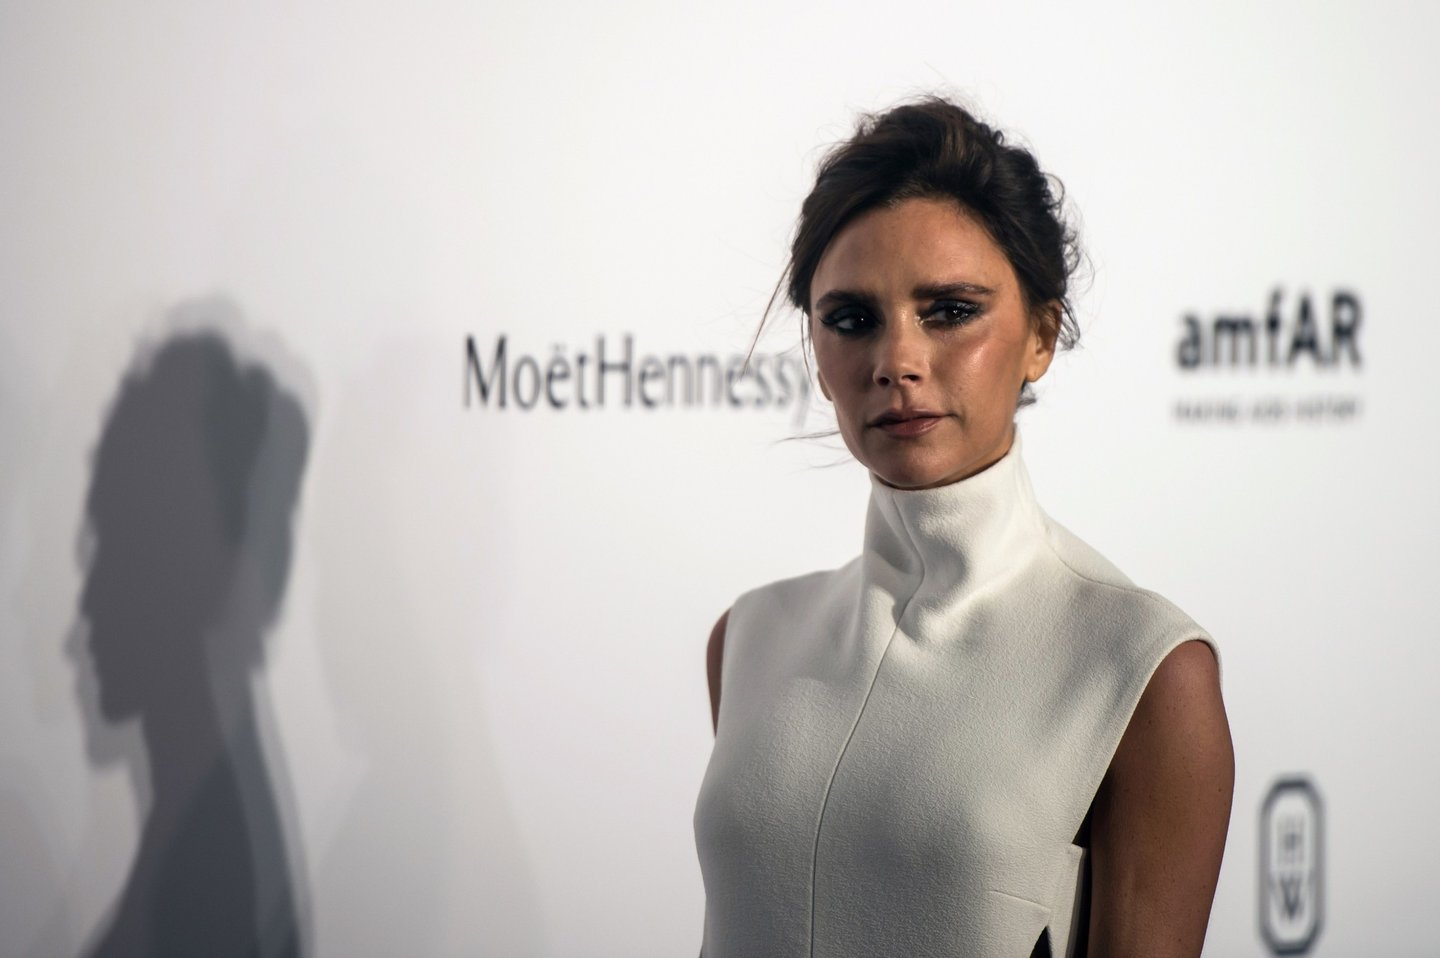 British fashion designer and singer Victoria Beckham poses as she arrives on the red carpet during the 2015 amfAR Hong Kong gala at Shaw Studios in Hong Kong on March 14, 2015. amfAR, The Foundation for AIDS Research, held its inaugural fundraising gala in Hong Kong on March 14. AFP PHOTO / ANTHONY WALLACE (Photo credit should read ANTHONY WALLACE/AFP/Getty Images)